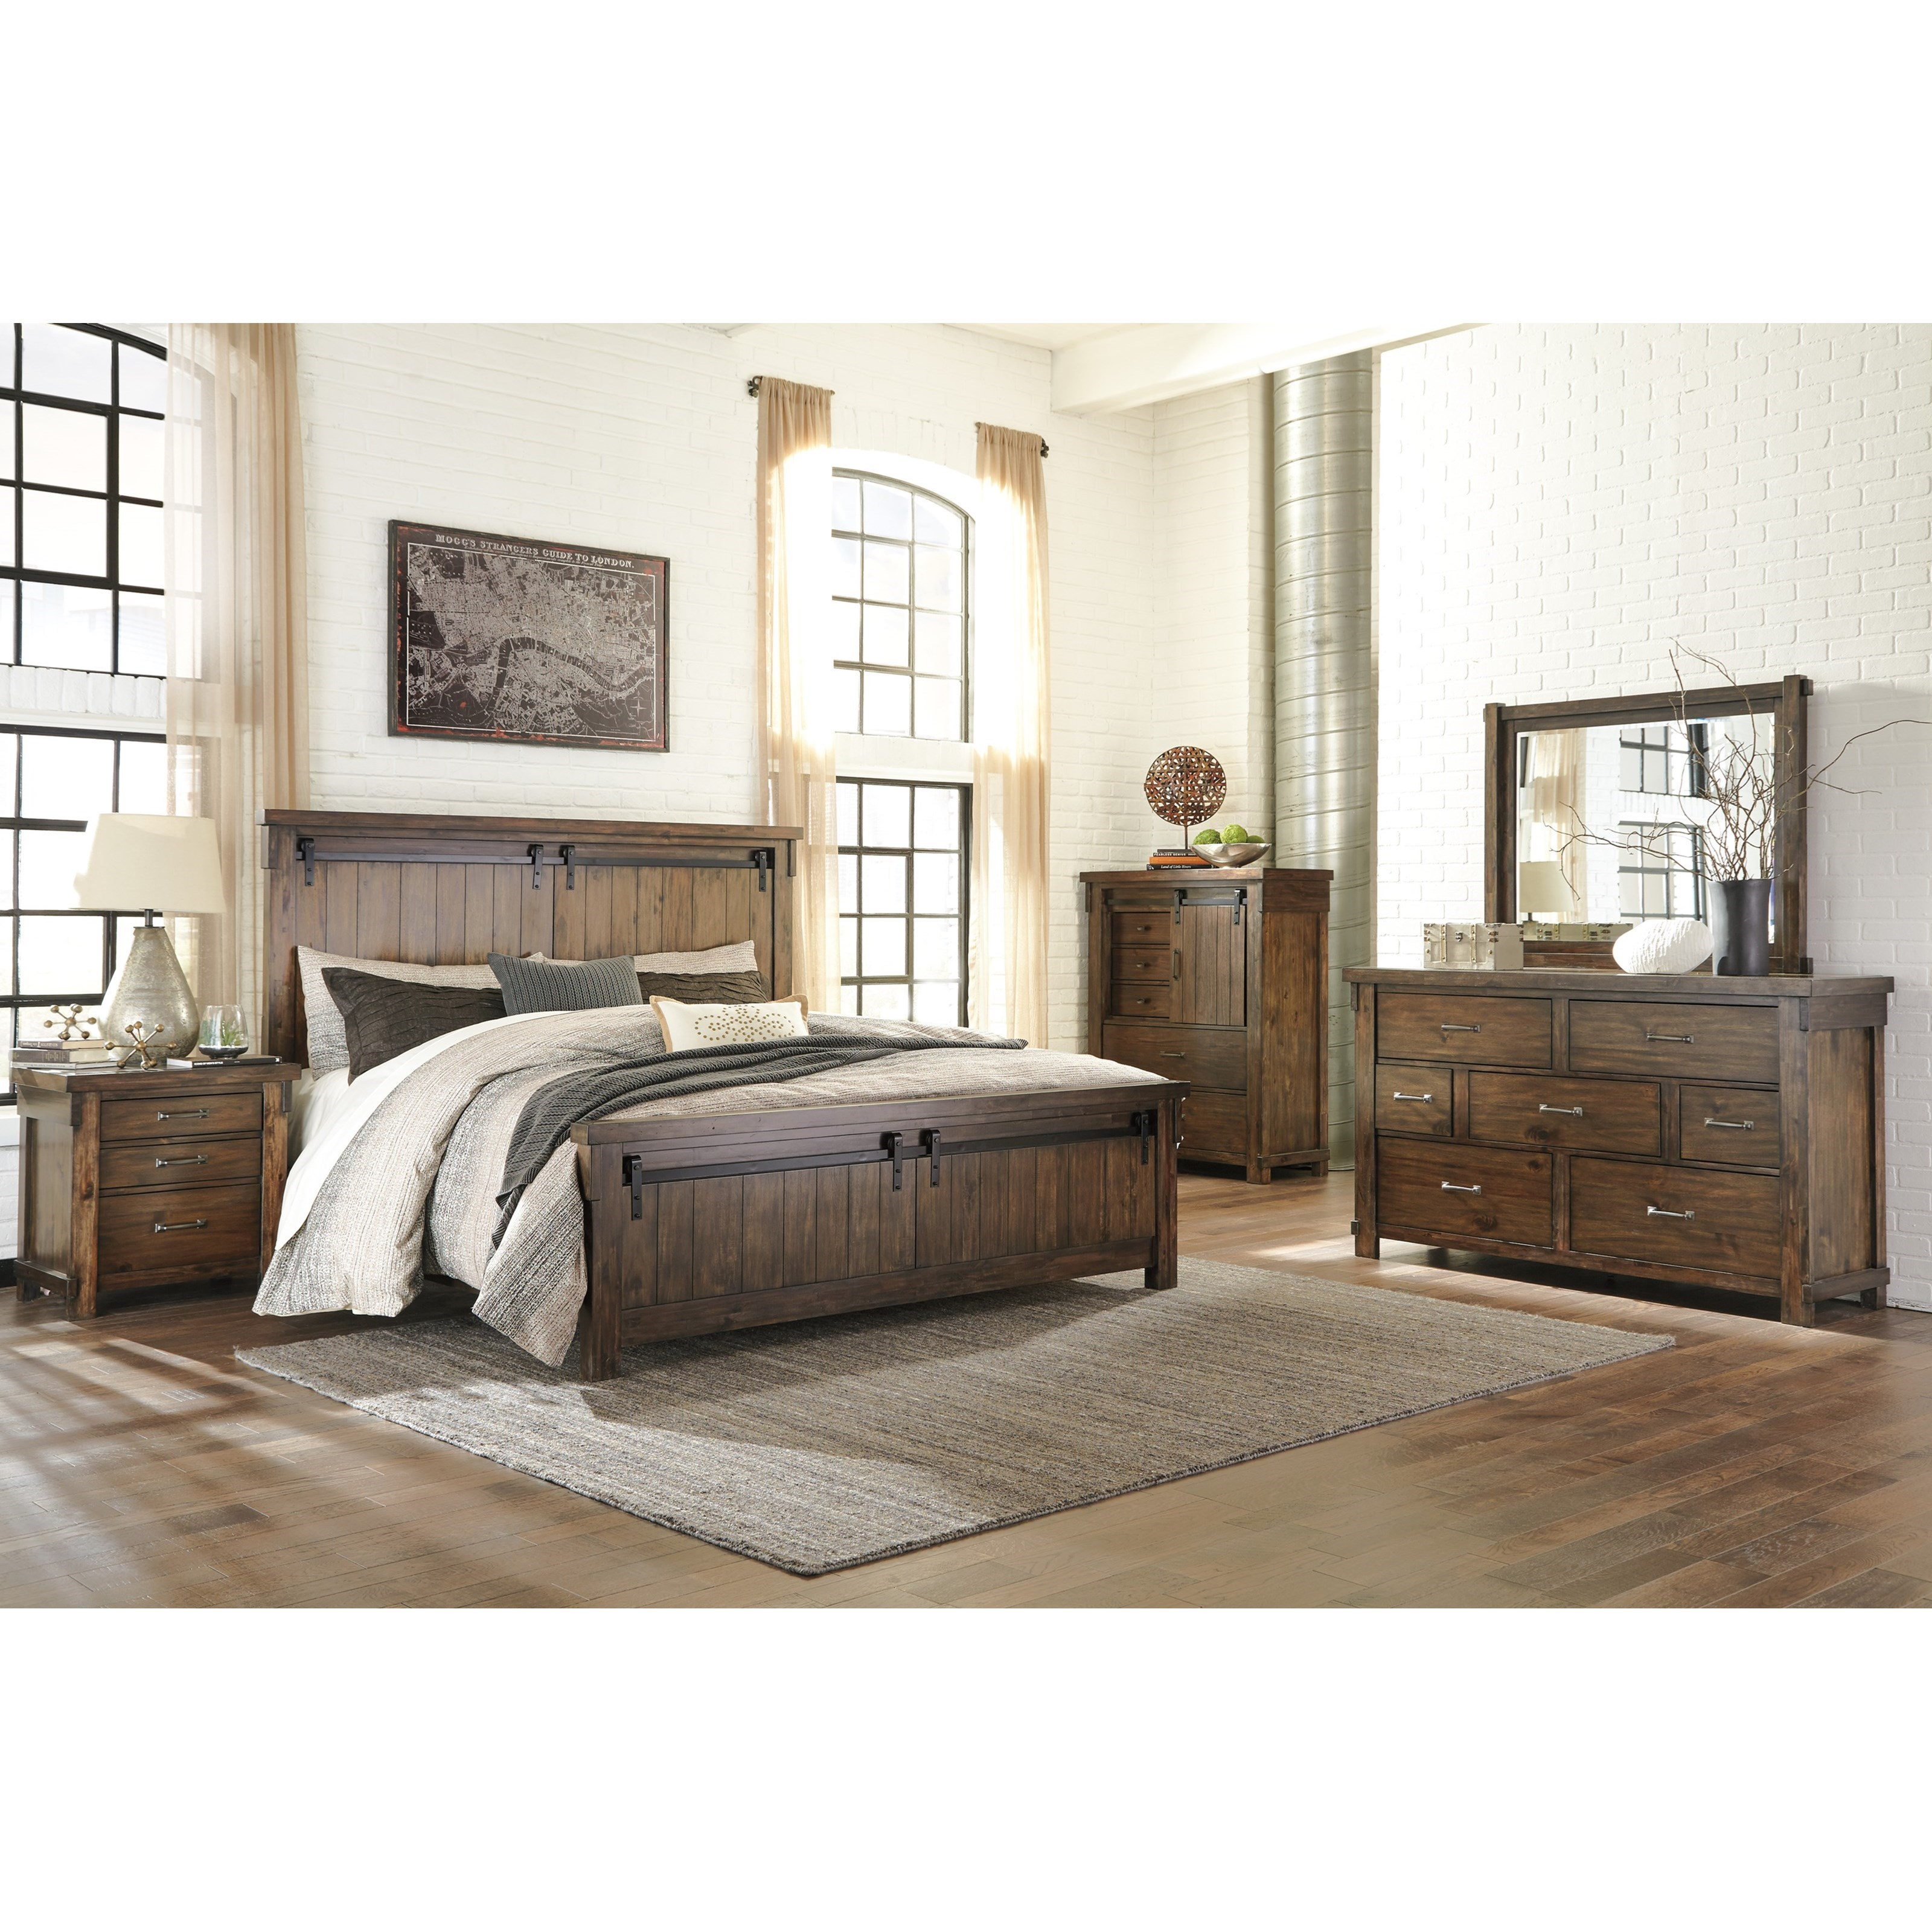 Lakeleigh California King Bedroom Group by Ashley (Signature Design) at Johnny Janosik